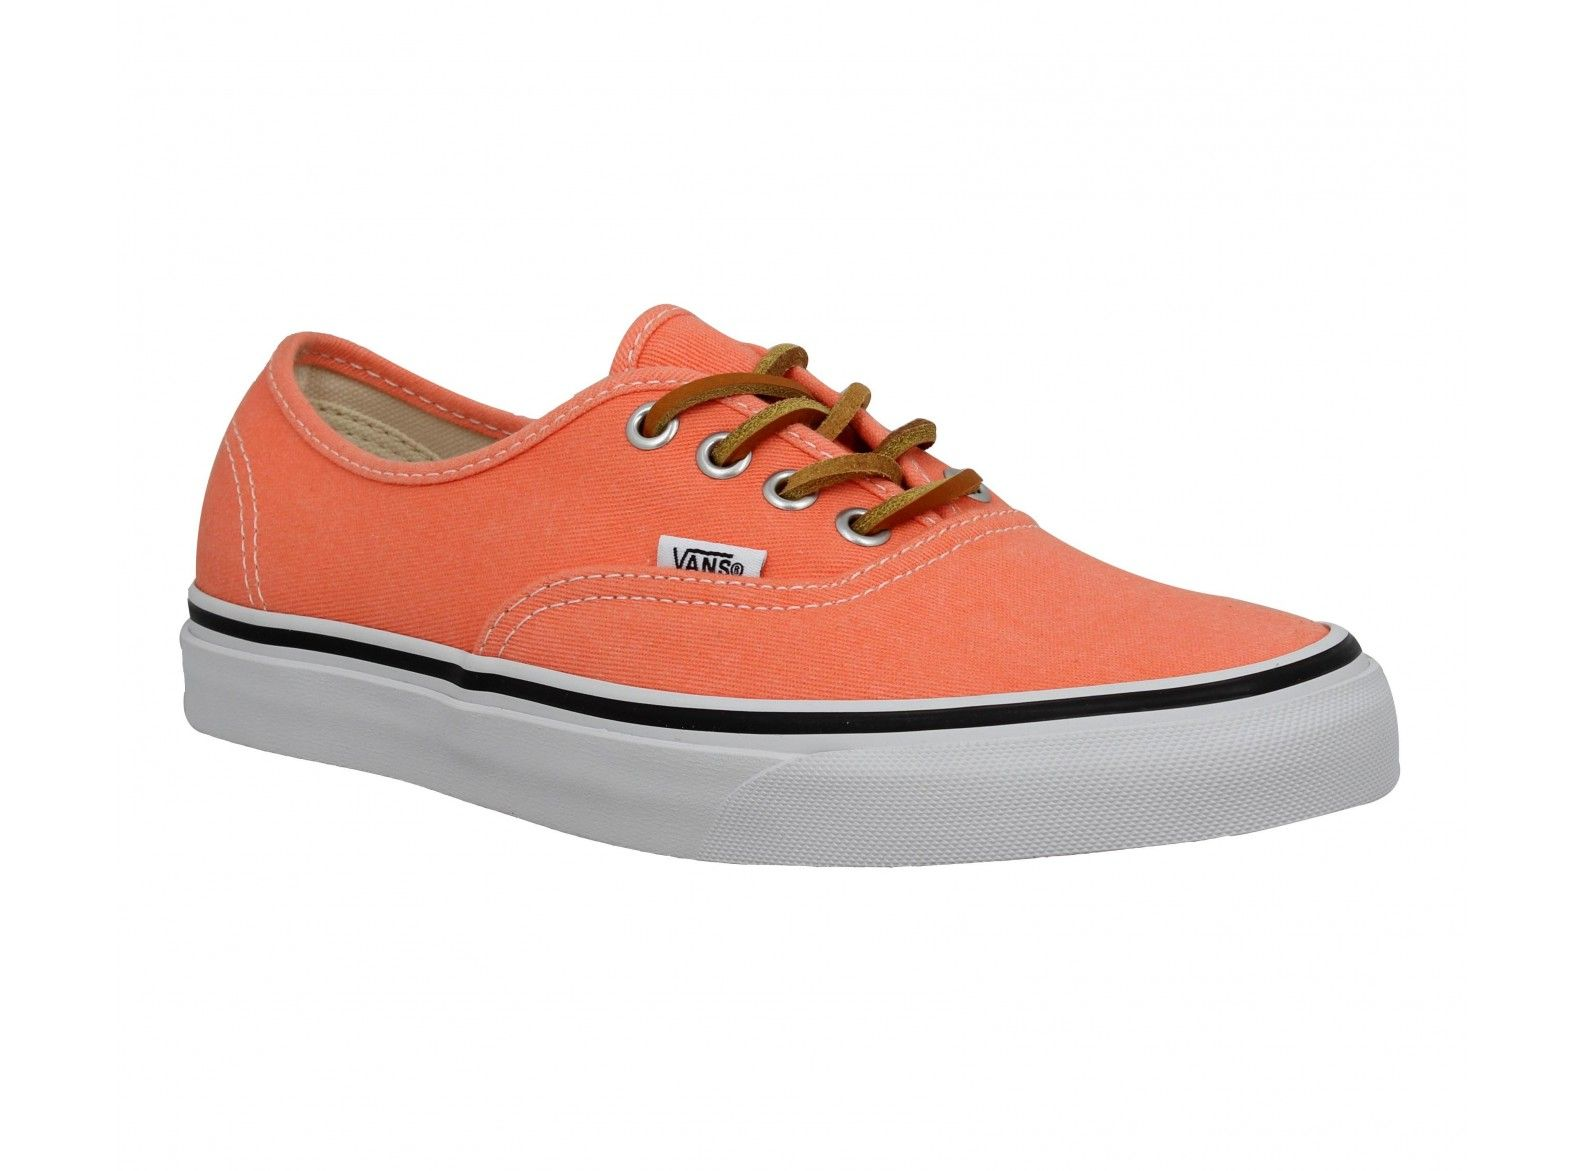 chaussure toile vans